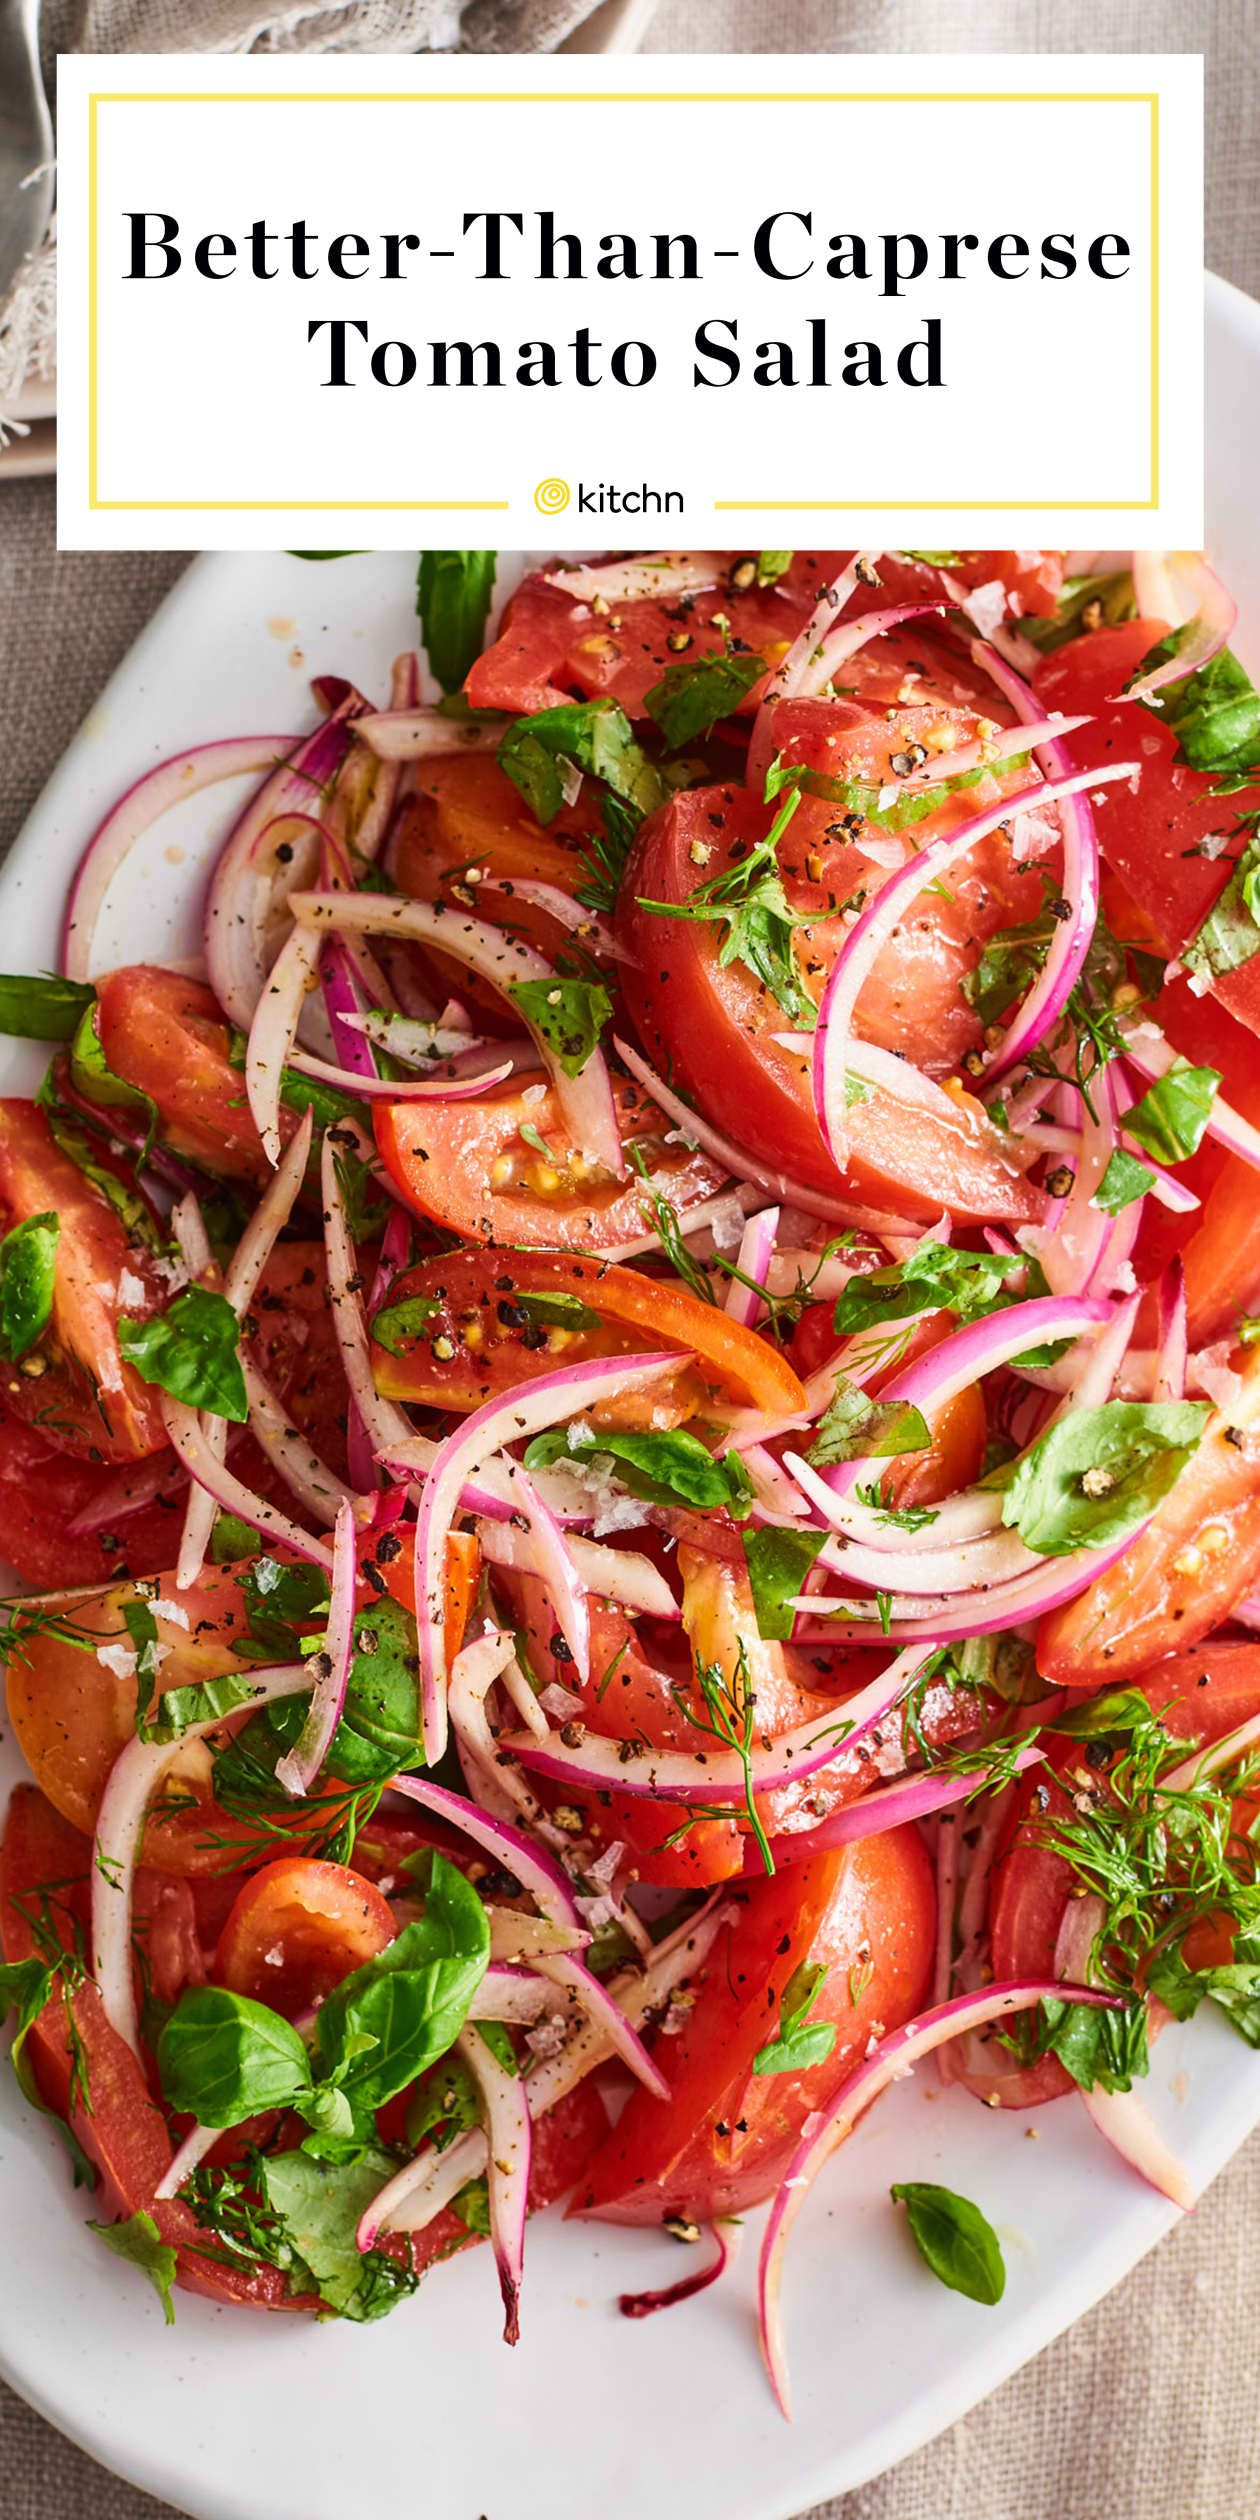 This Is the Summer Salad That Really Lets Tomatoes